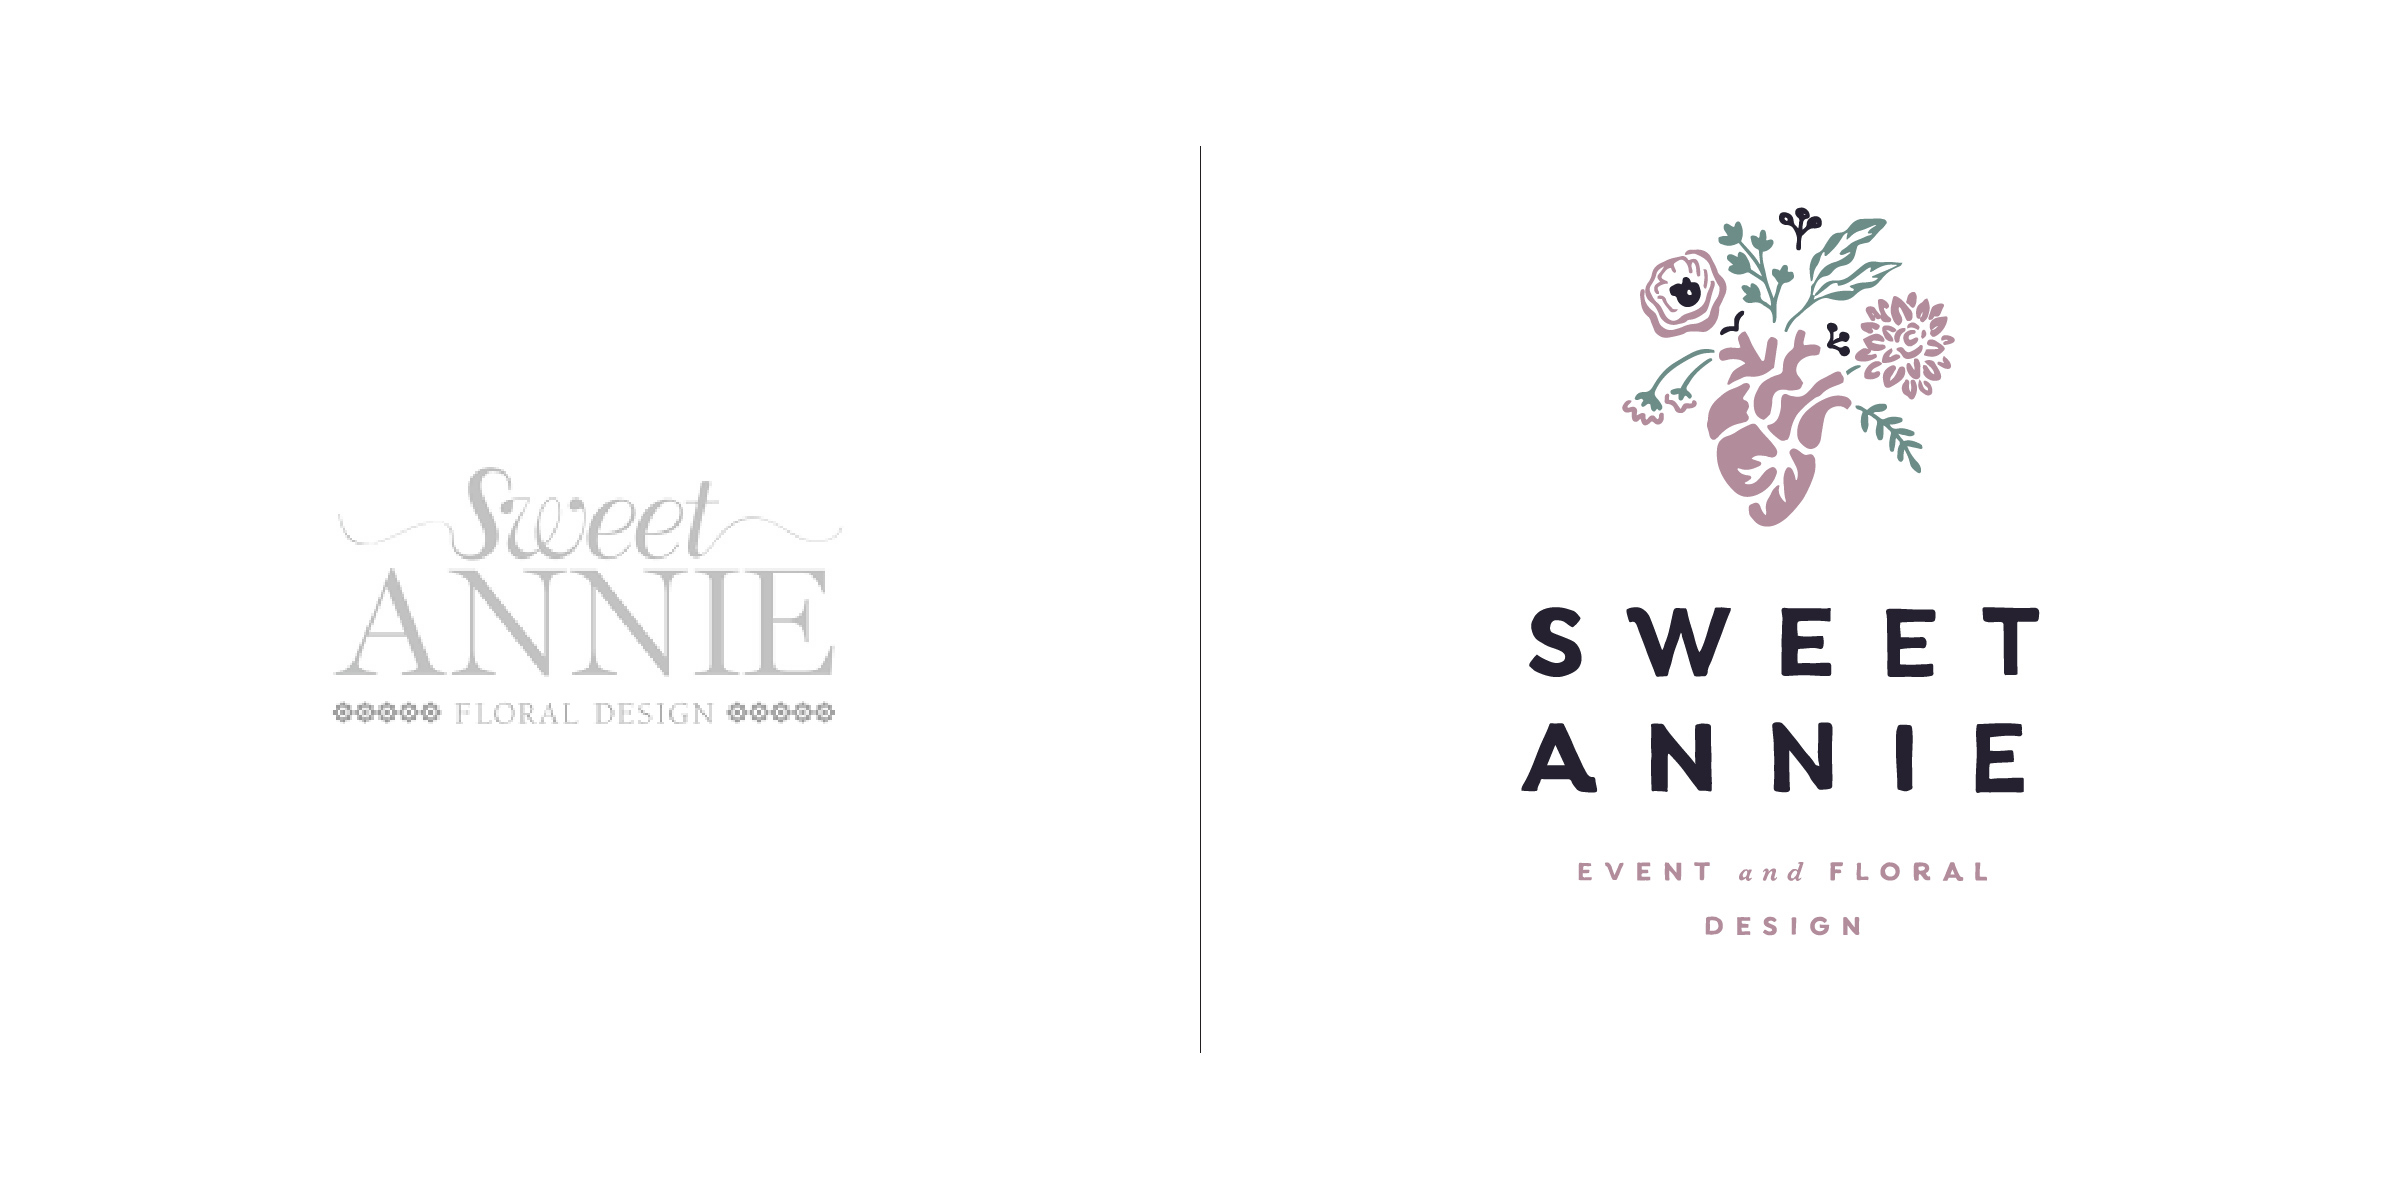 The client — Sweet Annie Floral is a boutique floral design studio, specializing in weddings and events from coast to coast.  The goal — To embrace a bolder, more unique logo that best expressed Sweet Annie's wholehearted passion for blooms. Because event and floral design is in their blood we hand illustrated the perfect visual representation that would turn heads and inspire hearts. The typography is daring while friendly and sophisticated with a classic twist. The whole look hits a fun & spirited cord with an obsessive attention to detail without constraint.